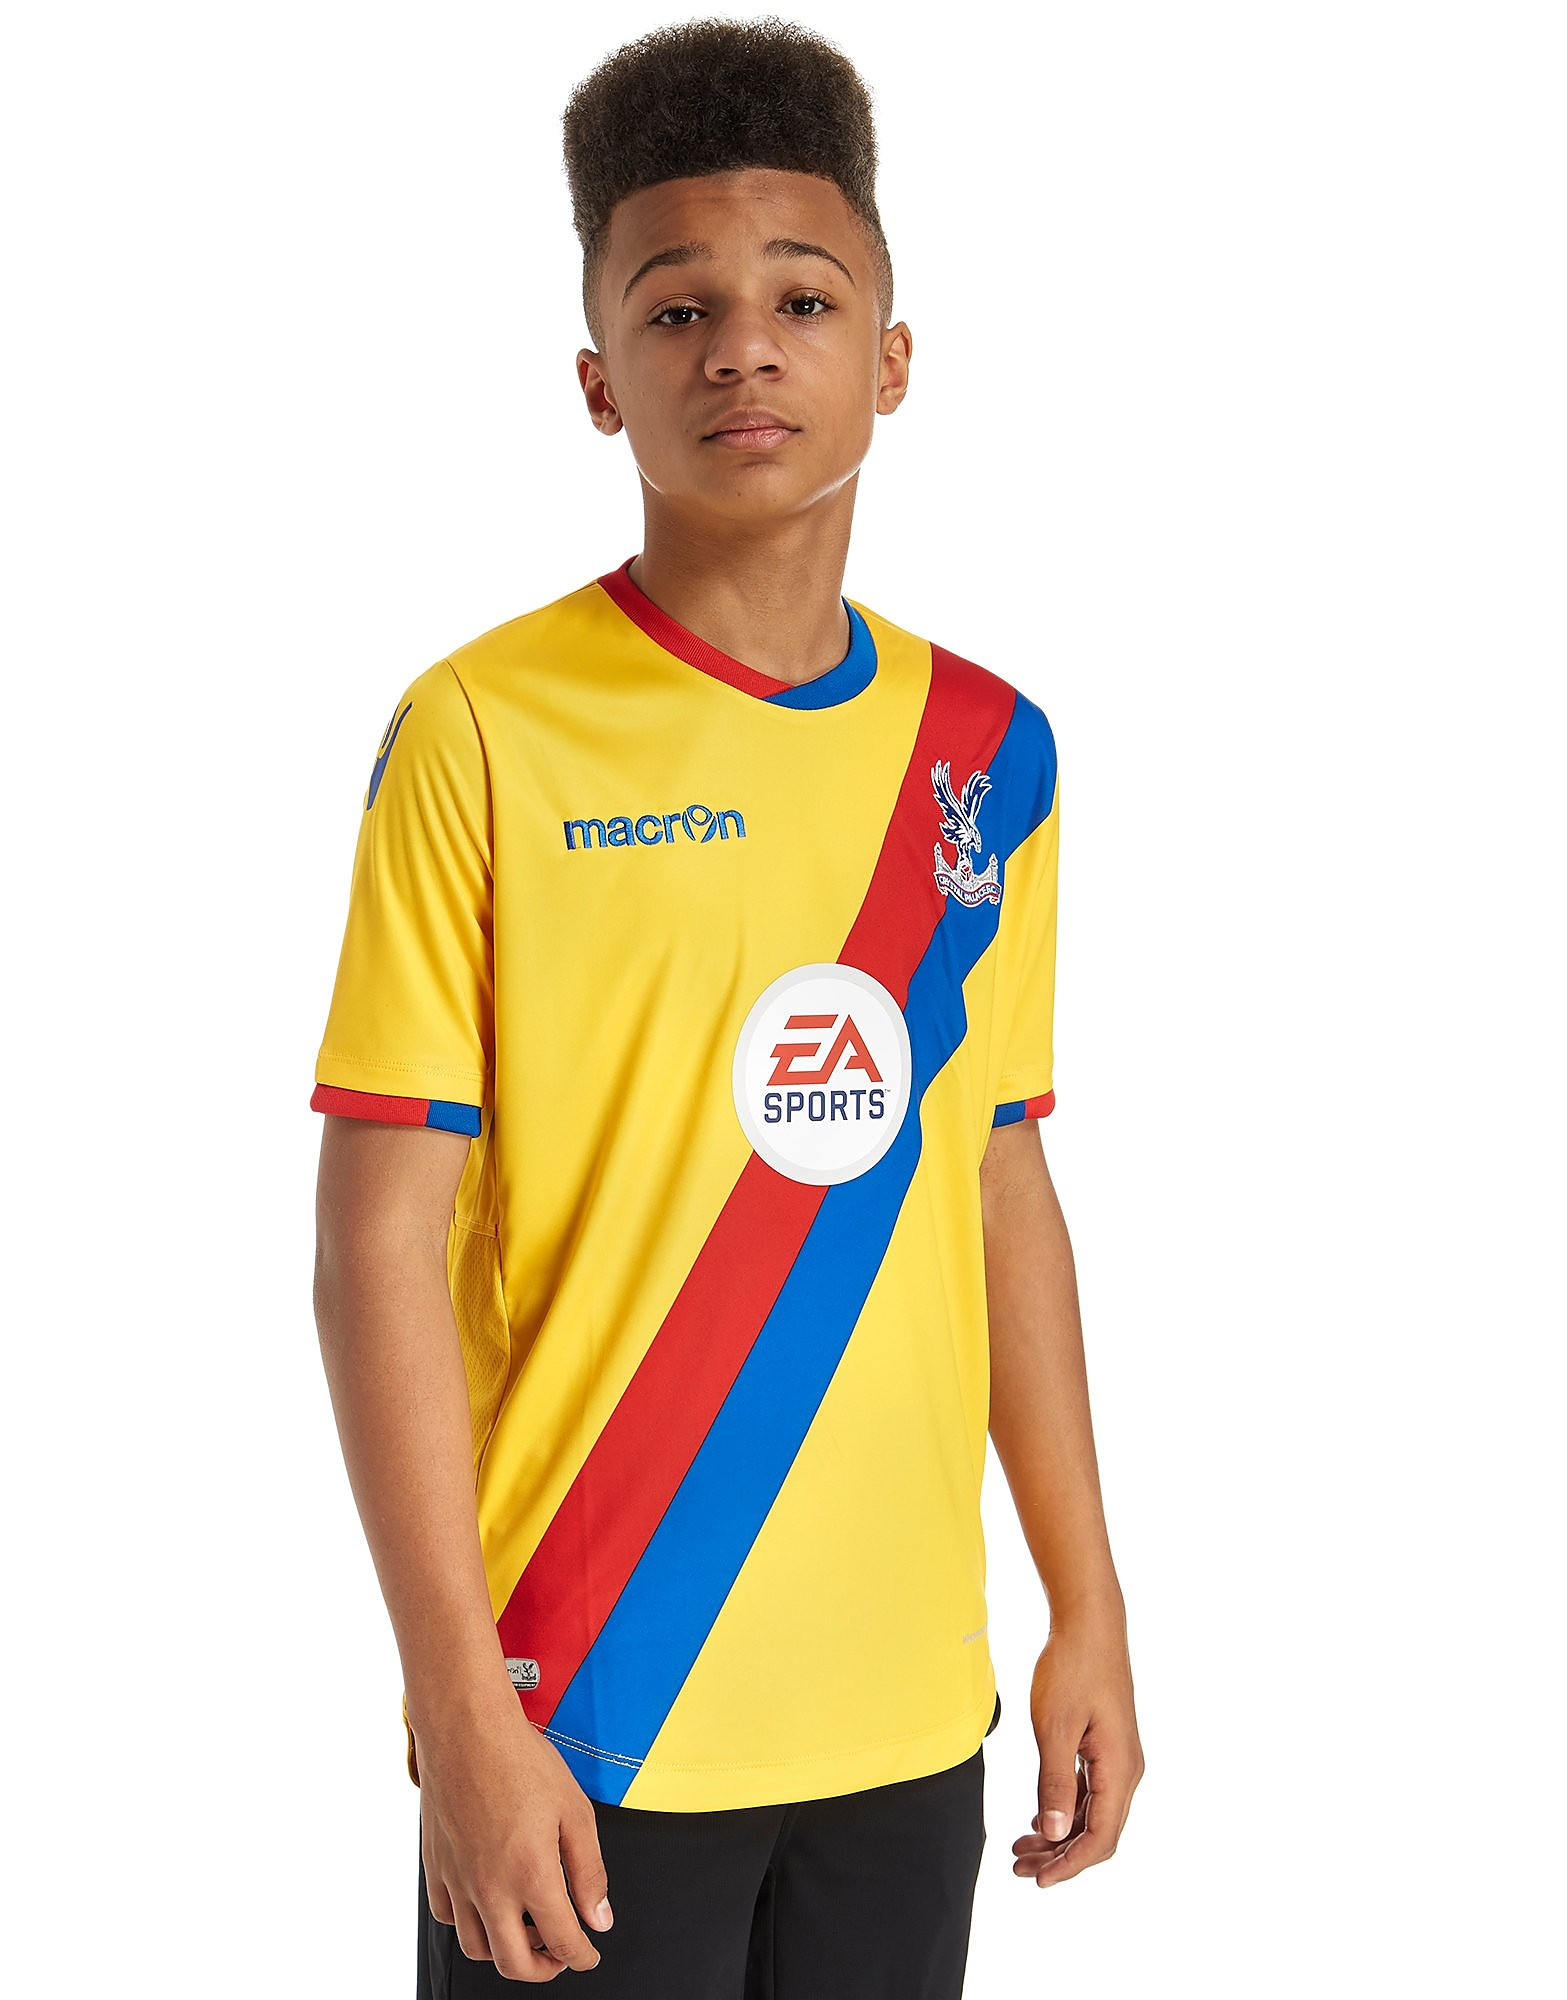 Macron Crystal Palace 2016/17 Away Shirt Junior